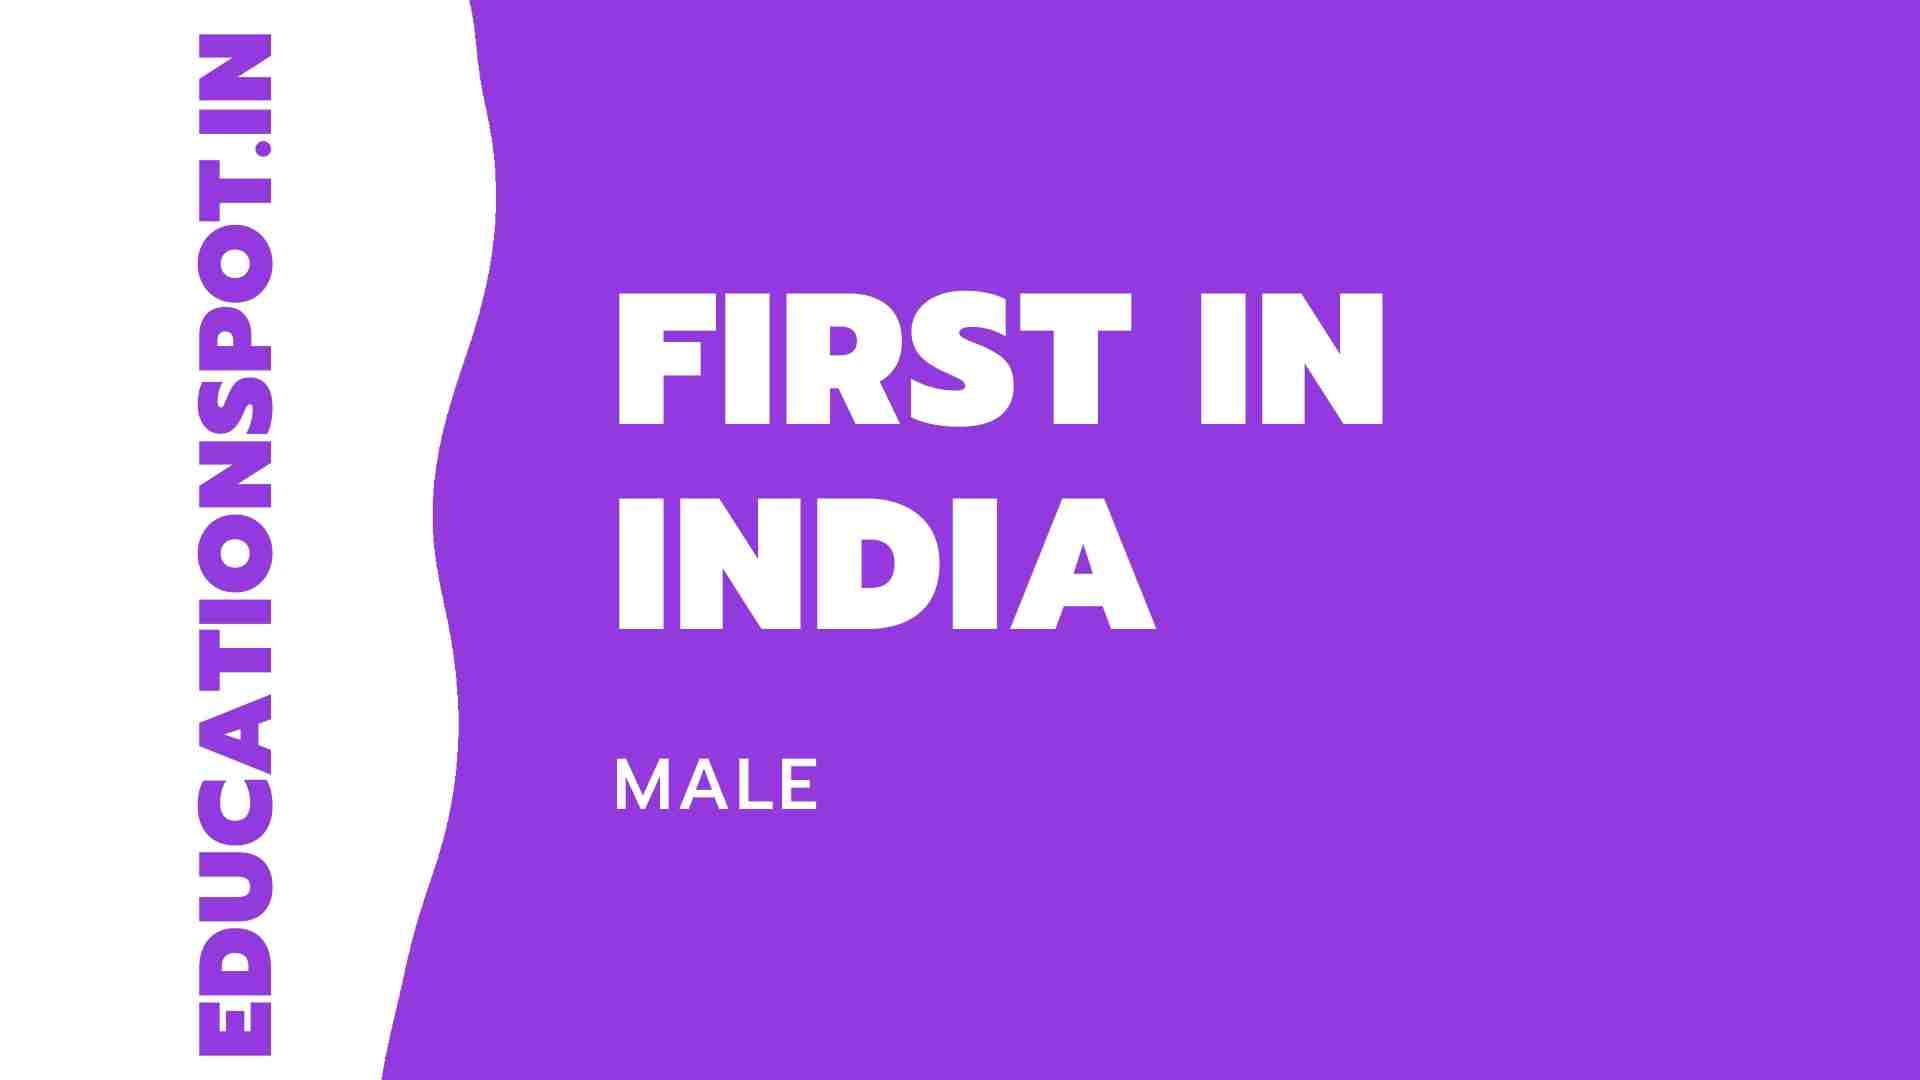 First in India Male